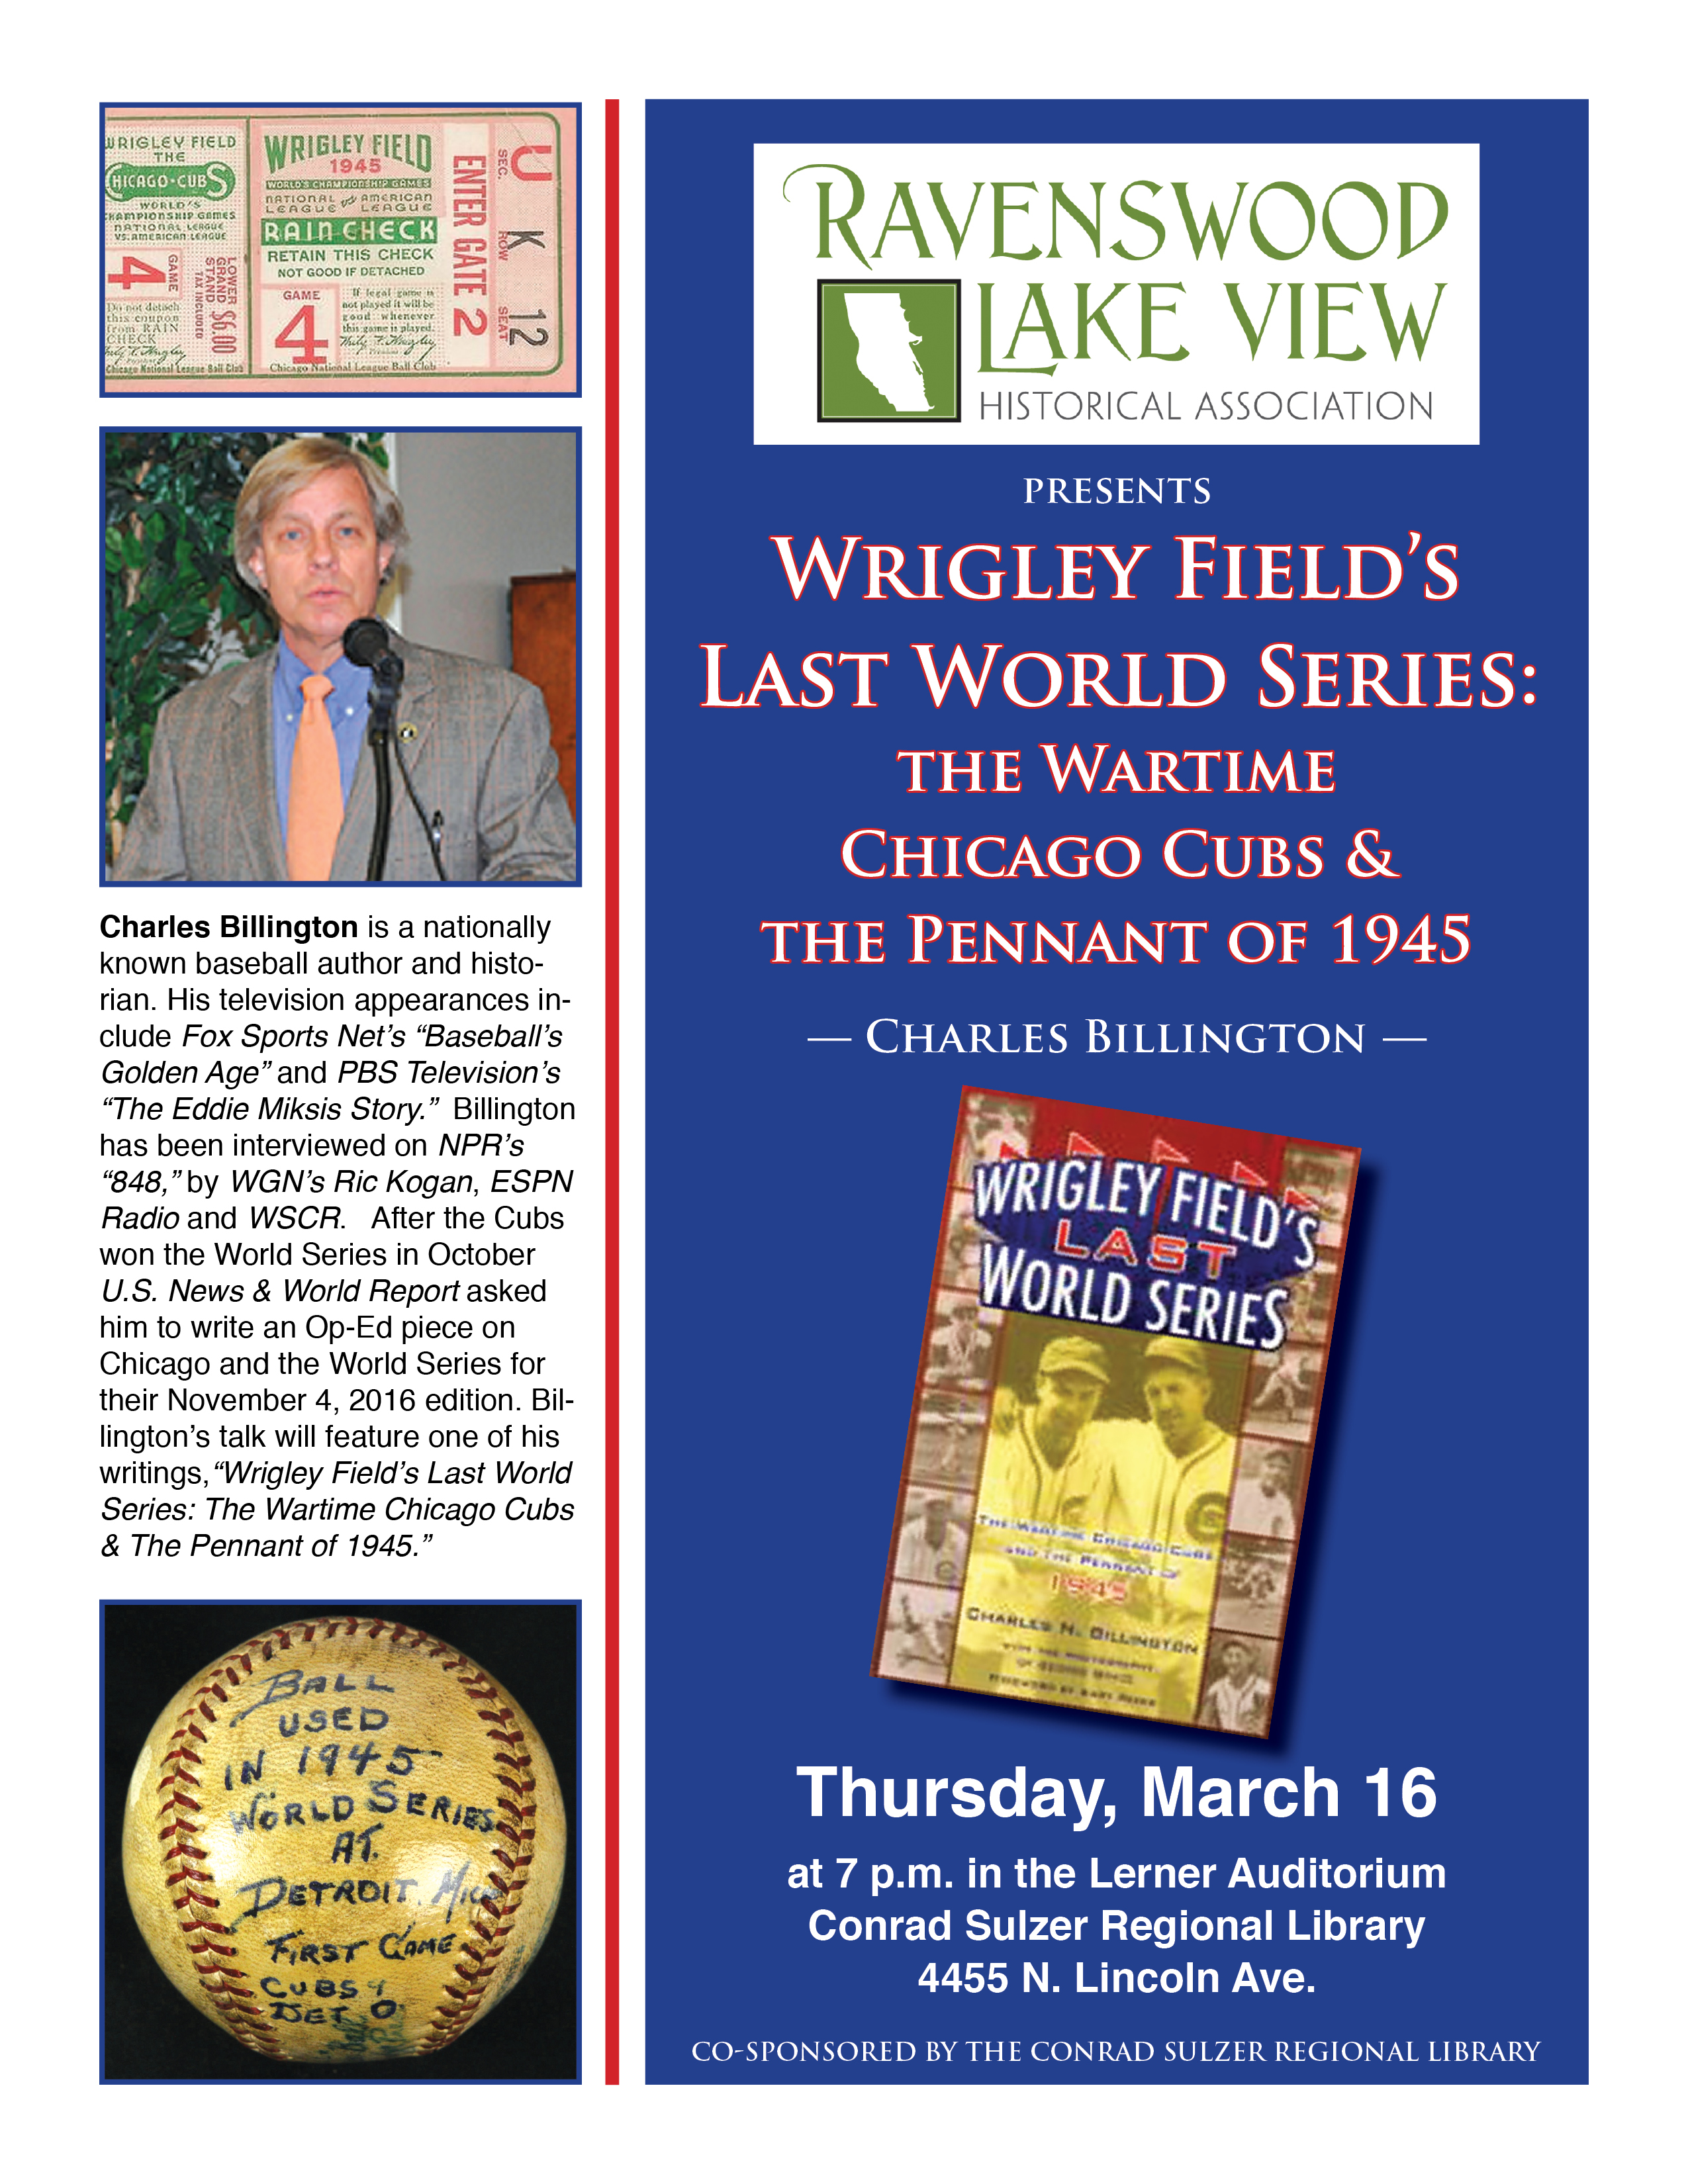 The Wartime Chicago Cubs and The Pennant of 1945, Thursday March 16, 7:00 p.m., Conrad Sulzer Regional Library, 4455 N. Lincoln Ave